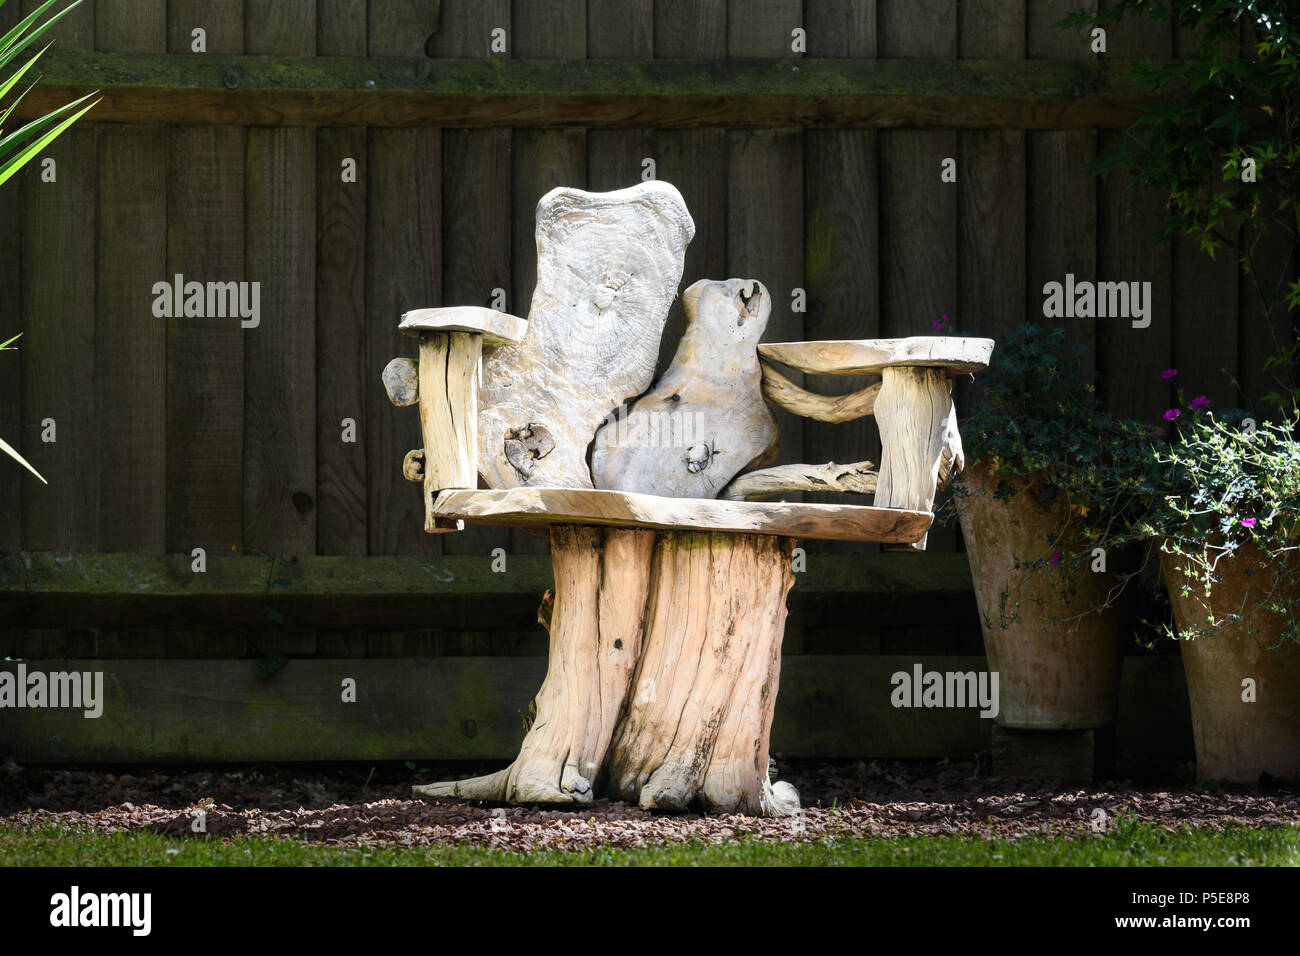 Crafted wood bench in front of a fence an a sunny day during summer time in an english garden. - Stock Image